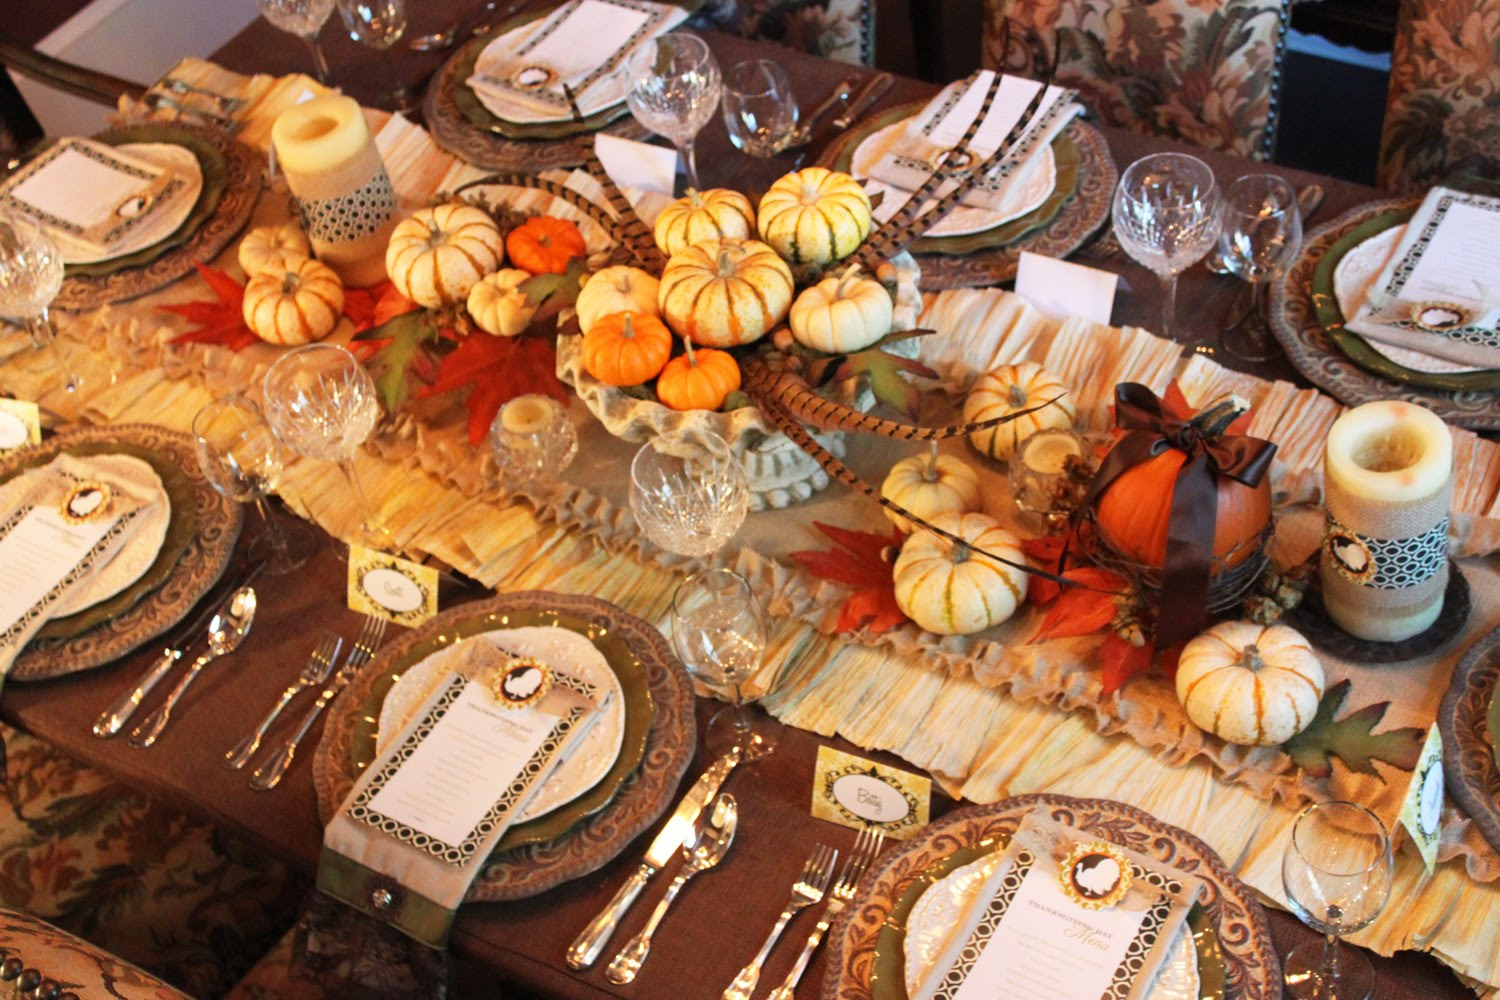 A feast for the eyes thanksgiving dinner table decorations How to set a thanksgiving dinner table